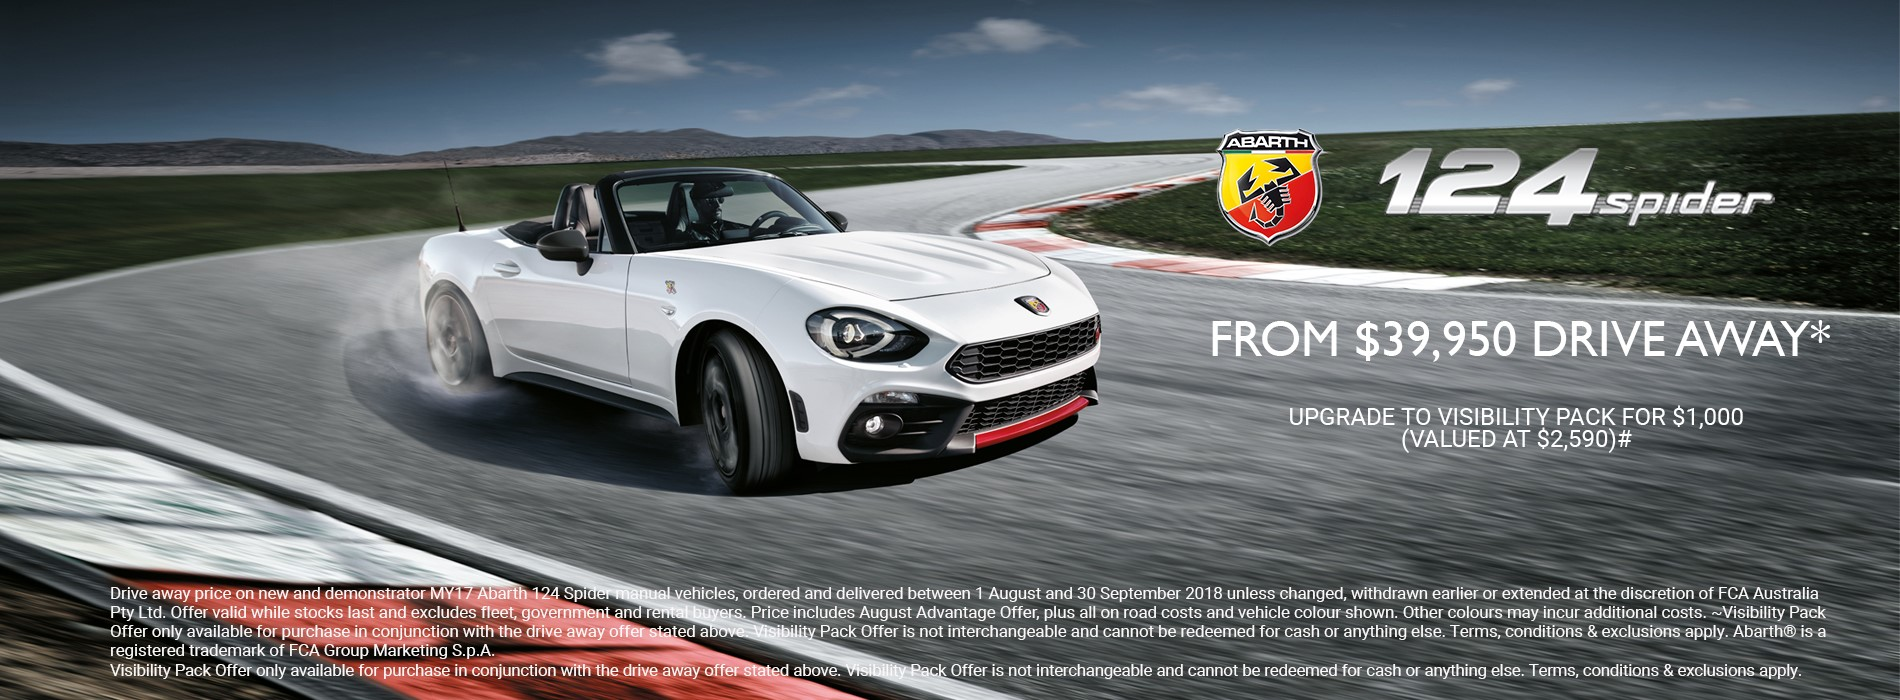 Abarth 124 Offer